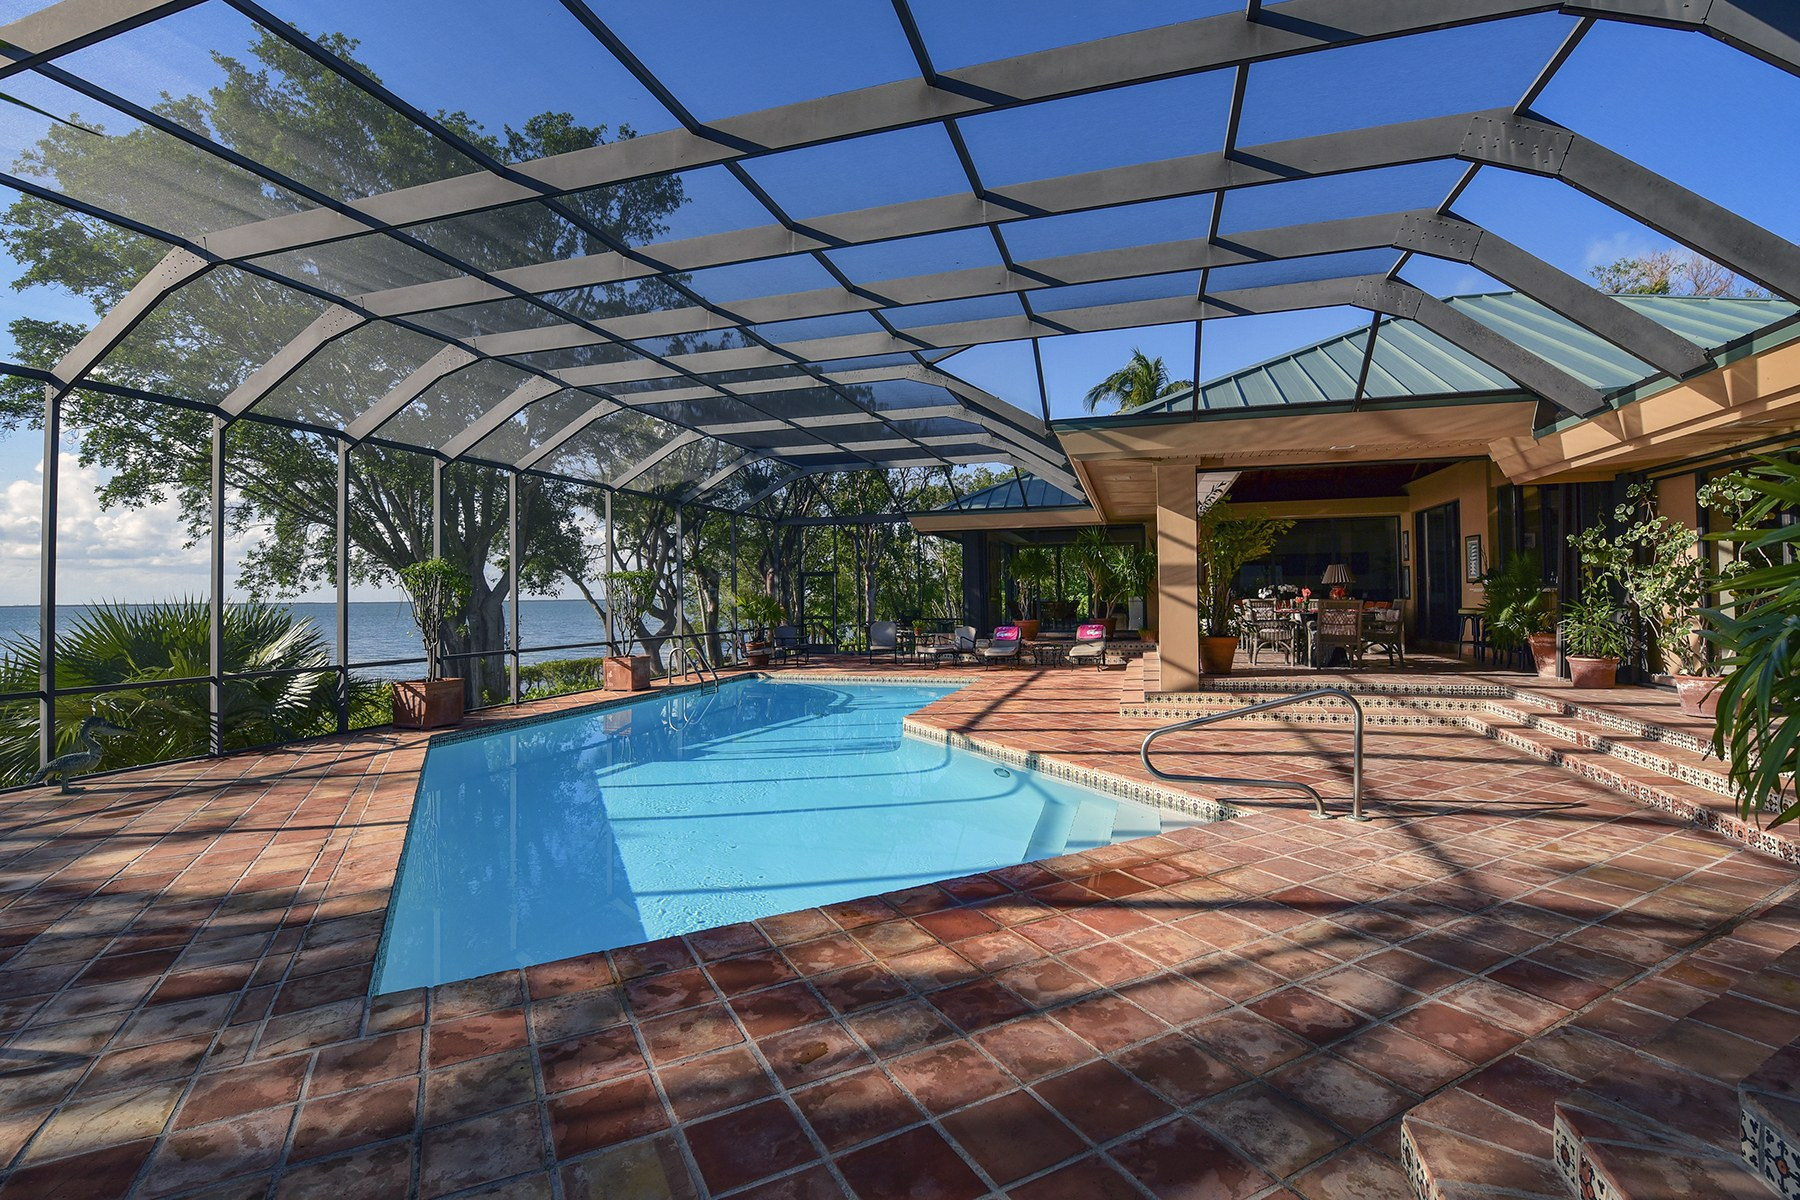 Additional photo for property listing at Pumpkin Key - Private Island, Key Largo, FL  Key Largo, Florida 33037 United States